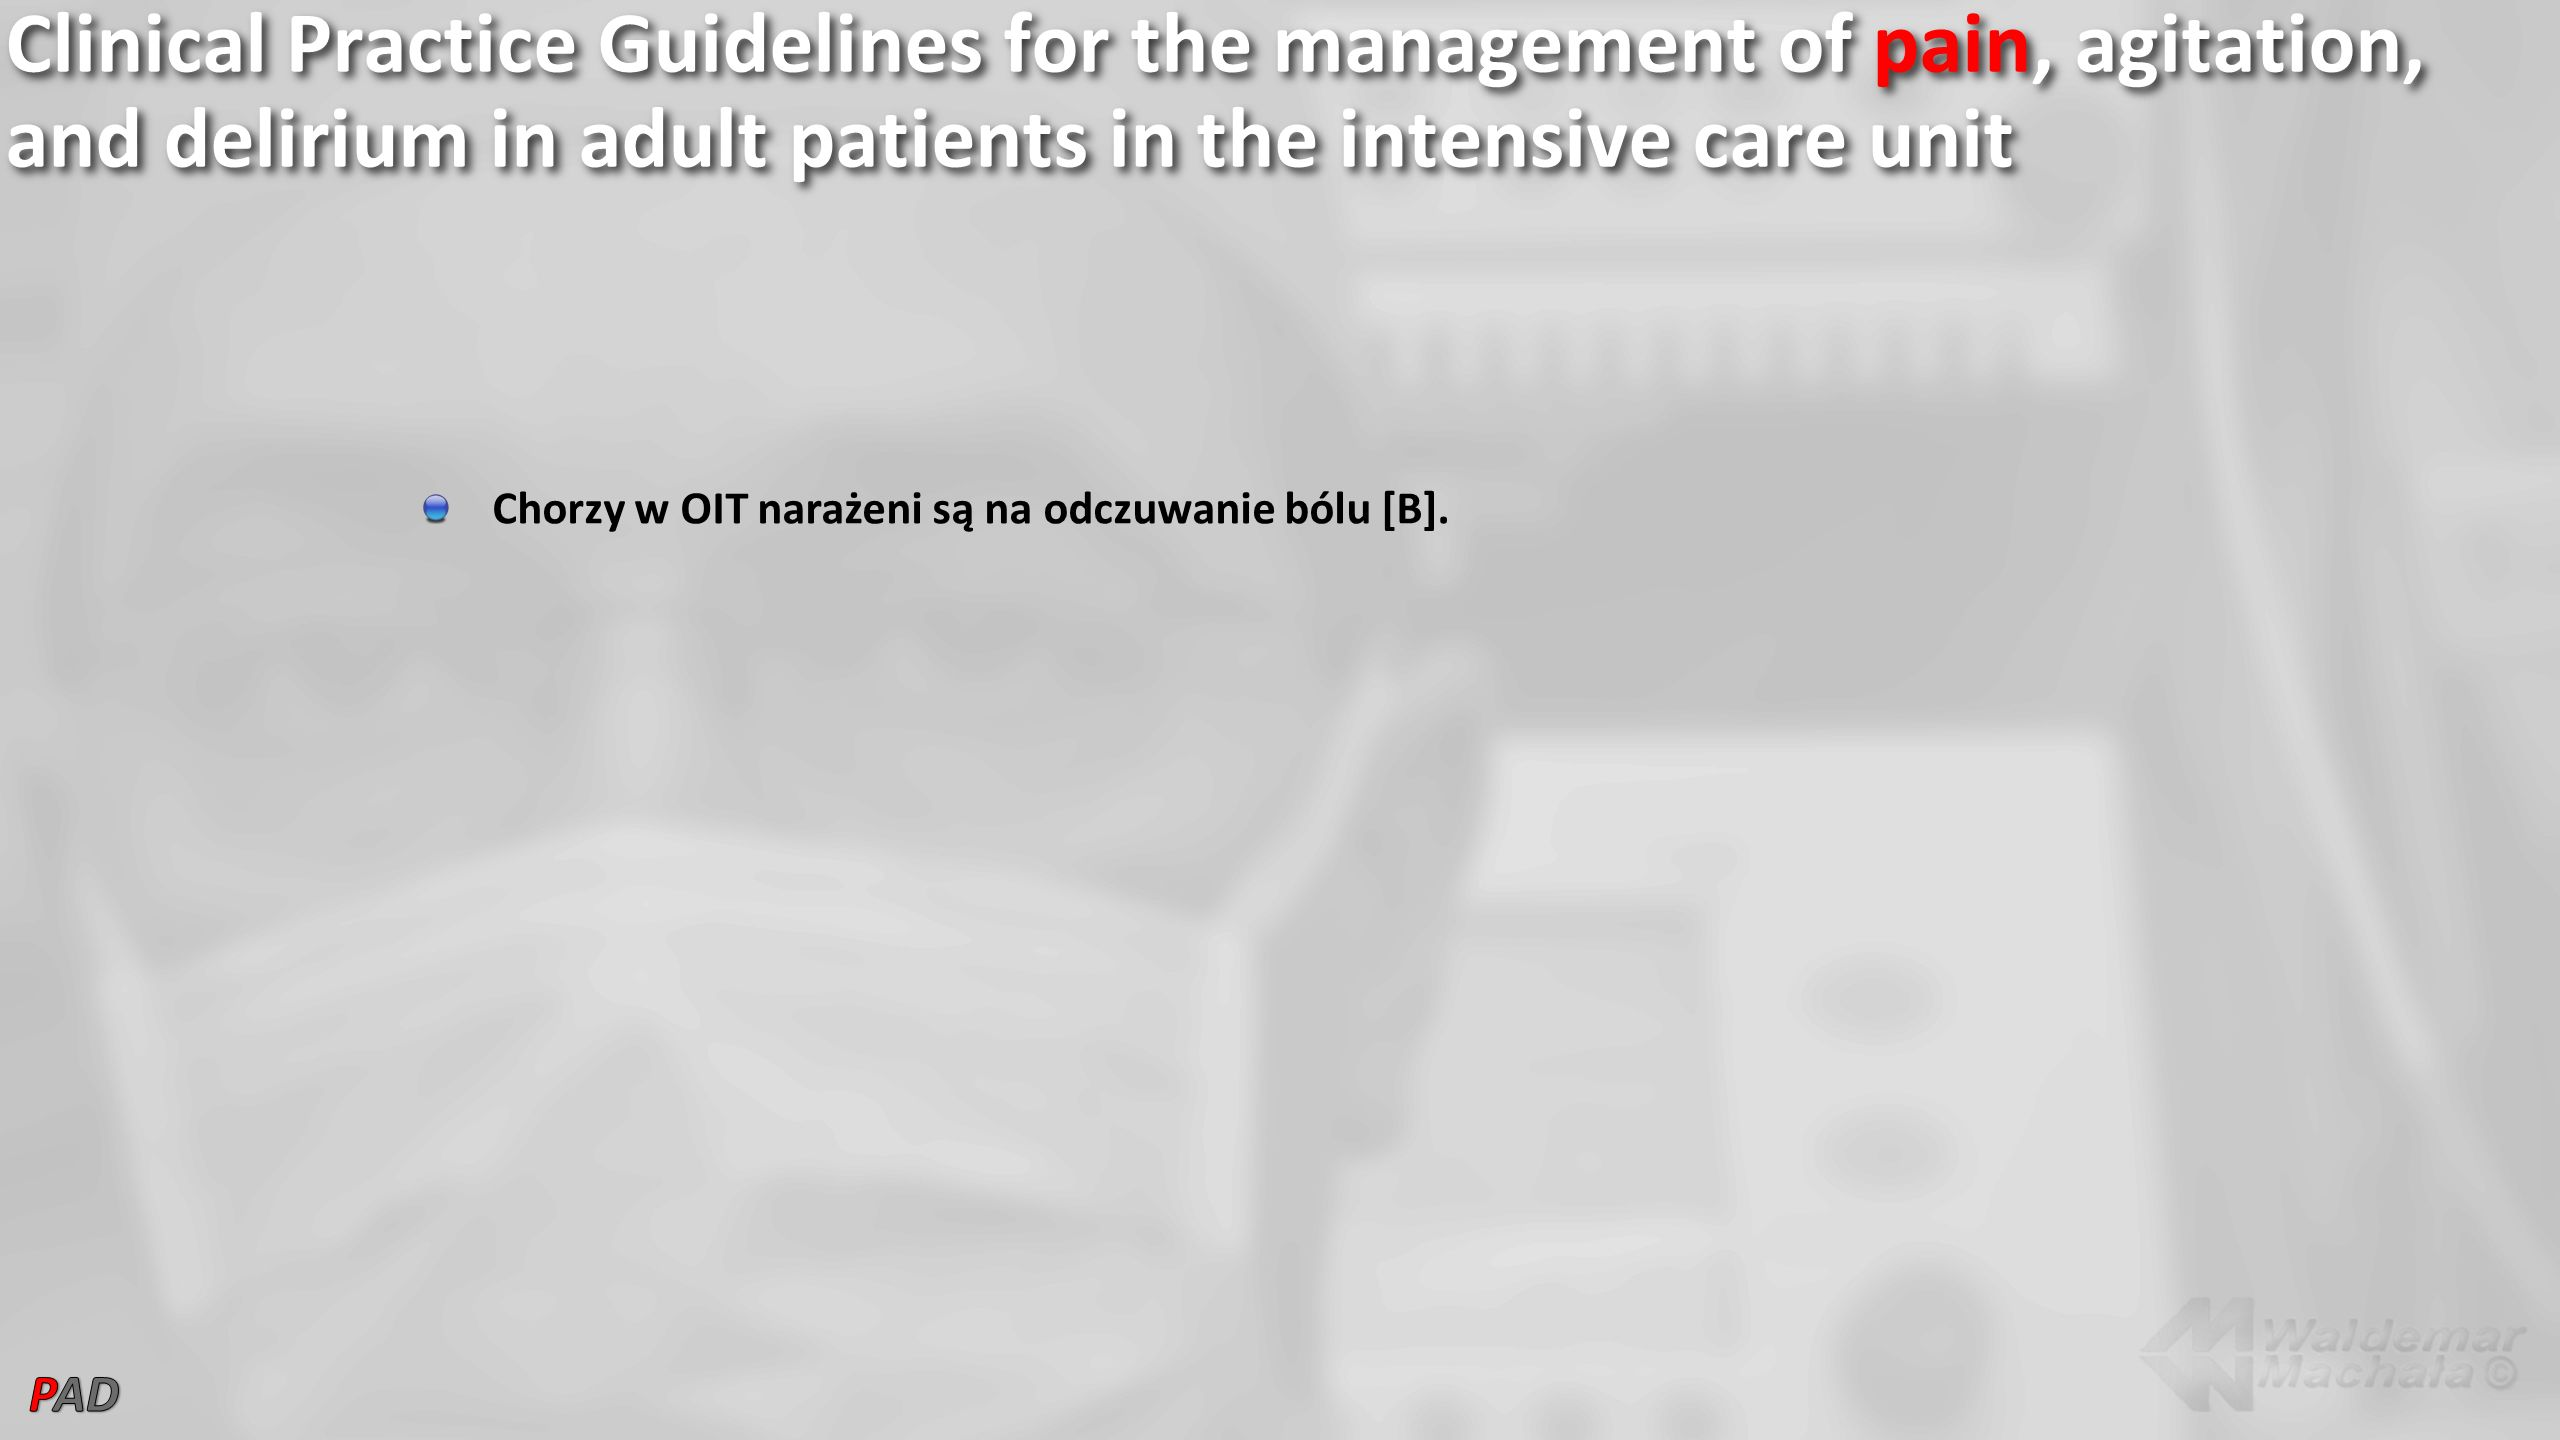 Clinical Practice Guidelines for the management of pain, agitation, and delirium in adult patients in the intensive care unit Chorzy w OIT narażeni są